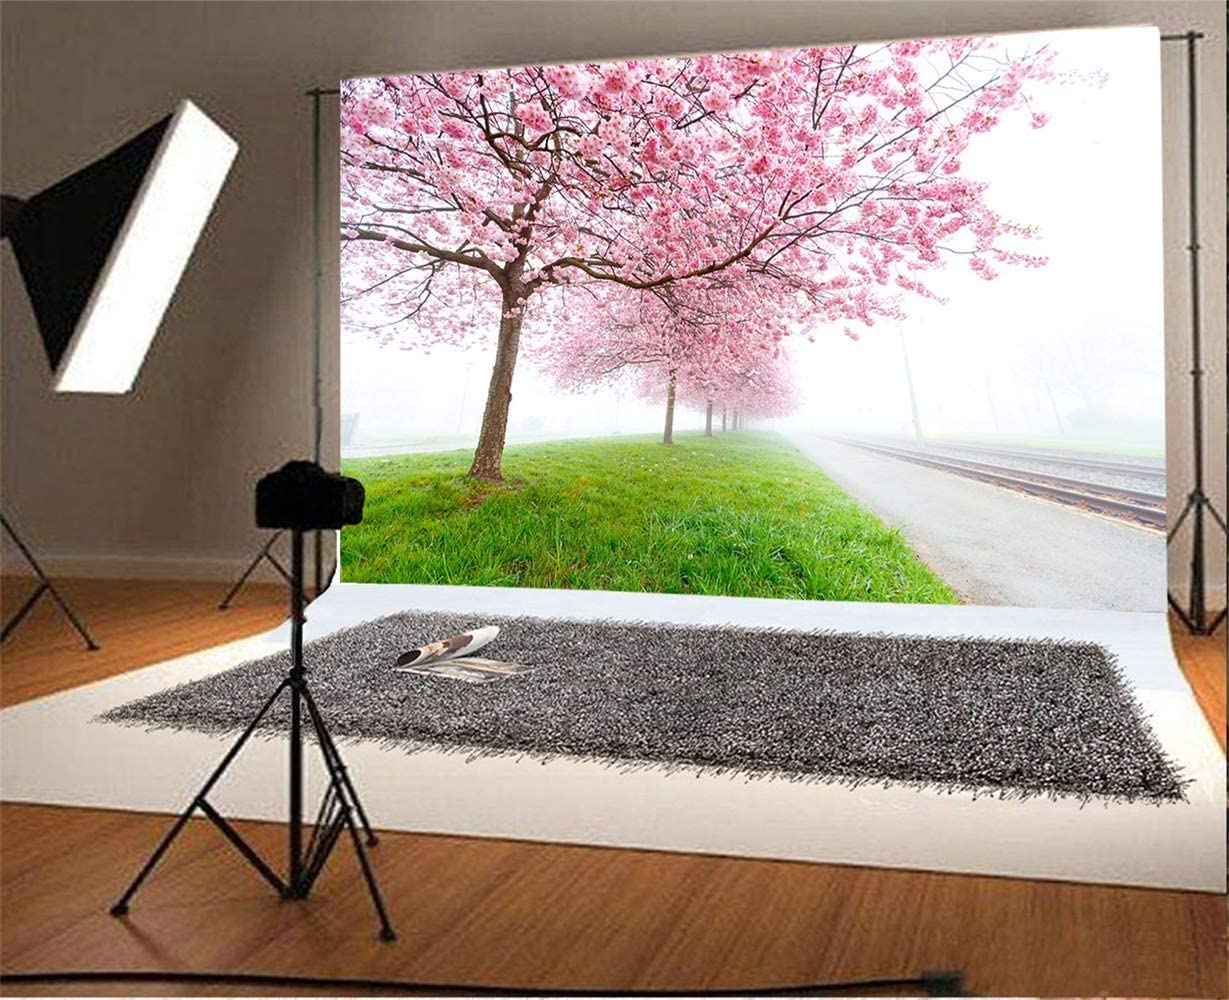 10x6.5ft Spring Blooming Line of Trees Grassland Misty Road Scene Backdrop Polyester Seamless Pink Blossoms Trees Background Wedding Photo Shoot Child Adult Bride Portrait Scenic Wallpaper